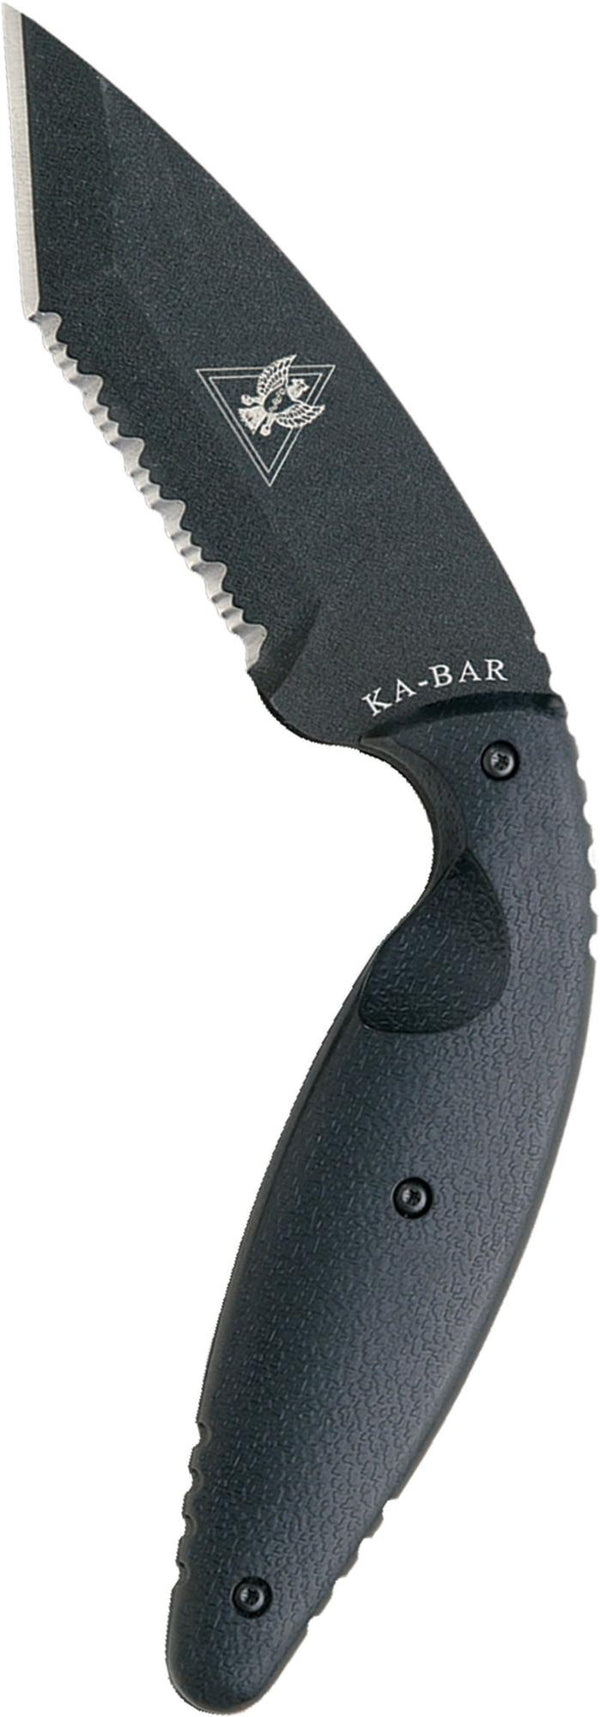 KA-BAR Large TDI Law Enforcement Knife, Black, Molle Straps Tanto, Serrated Edge - Forethought Survival Essentials